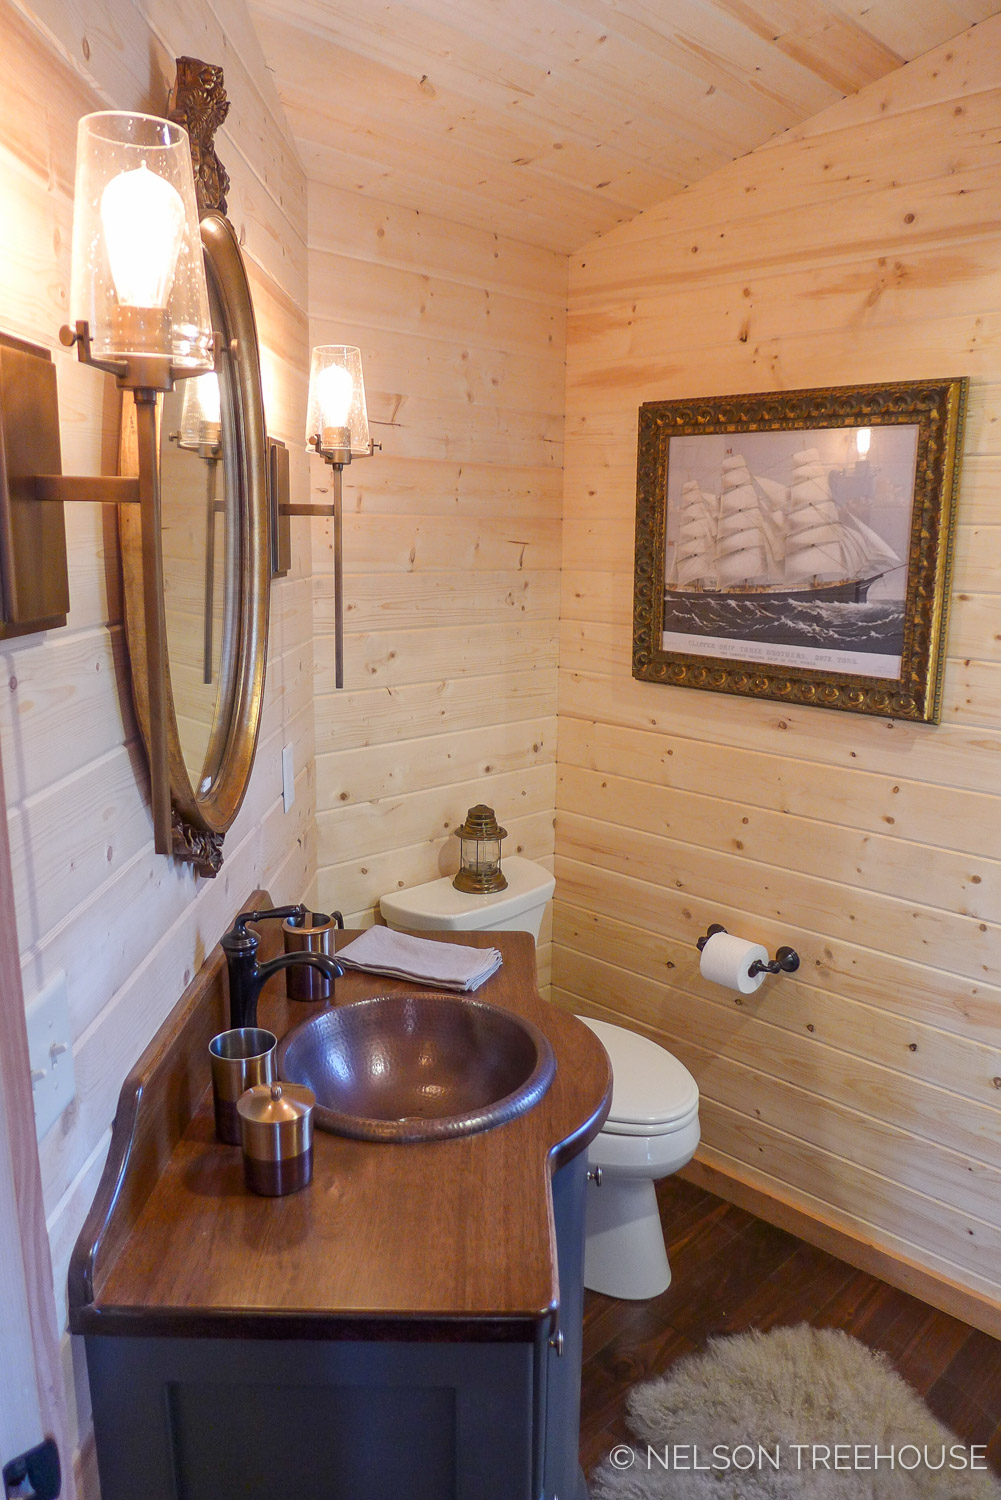 Super Spy Treehouse - Nelson Treehouse 2018 - Bathroom